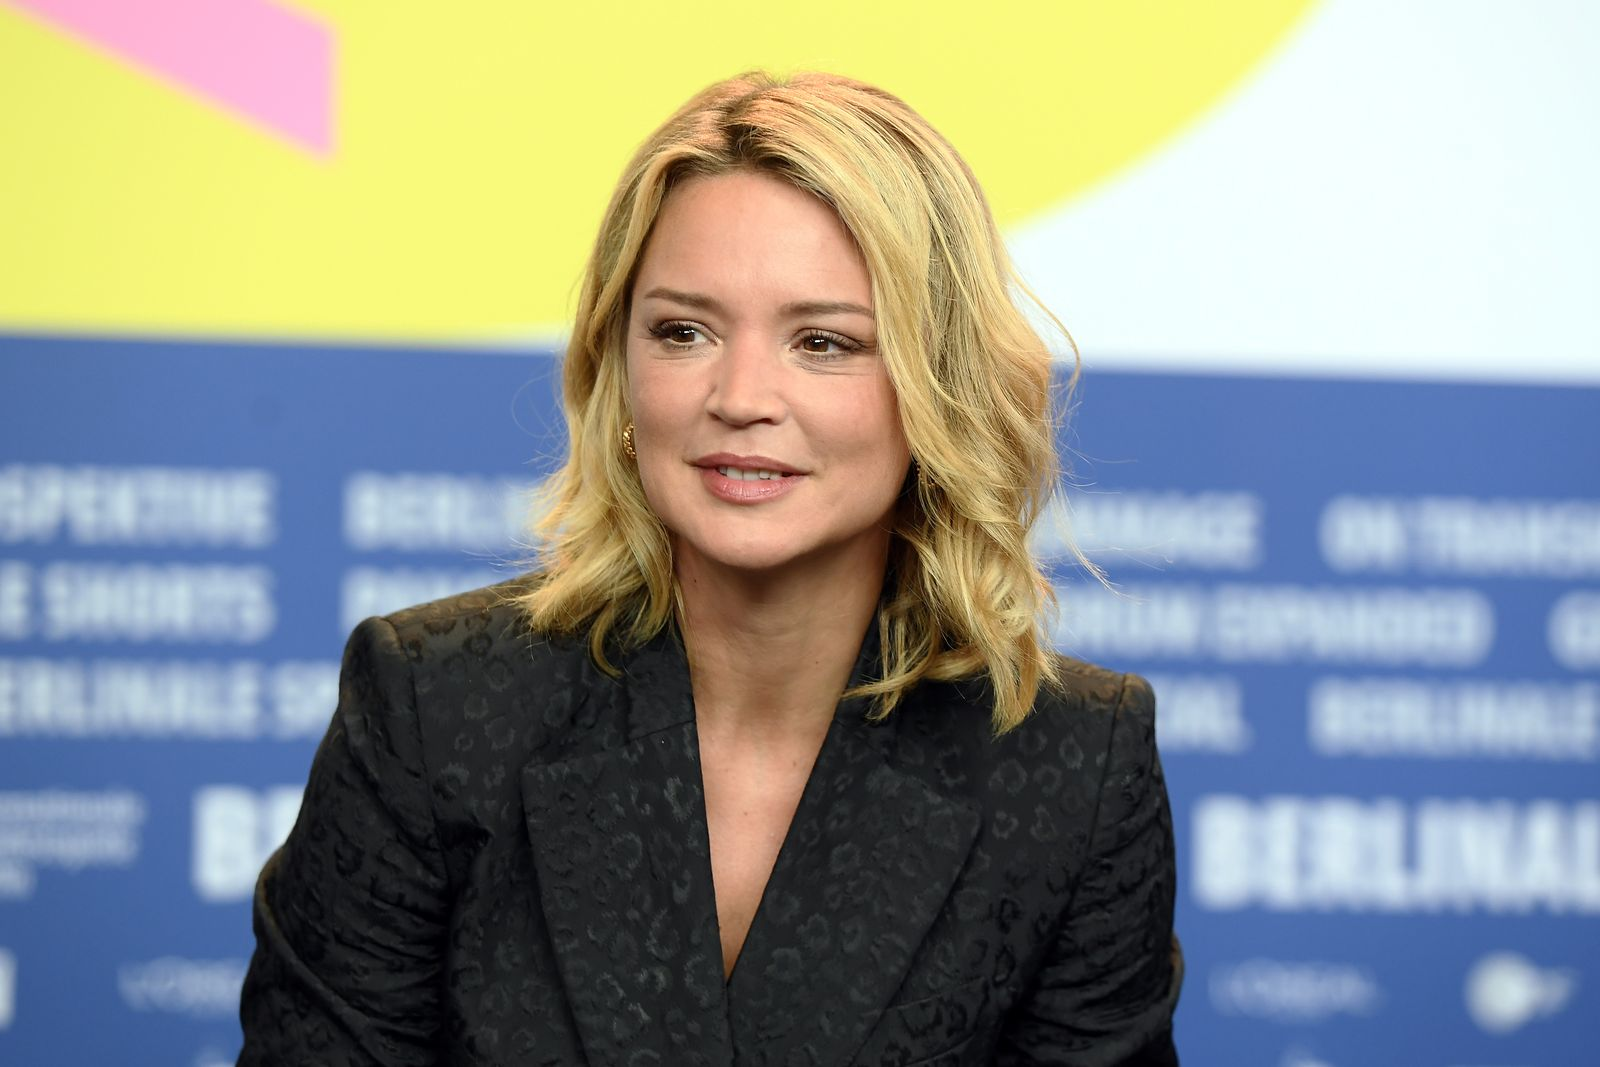 Virginie Efira au Grand Hyatt Hotel le 28 février 2020 à Berlin, Allemagne. | Photo : Getty Images